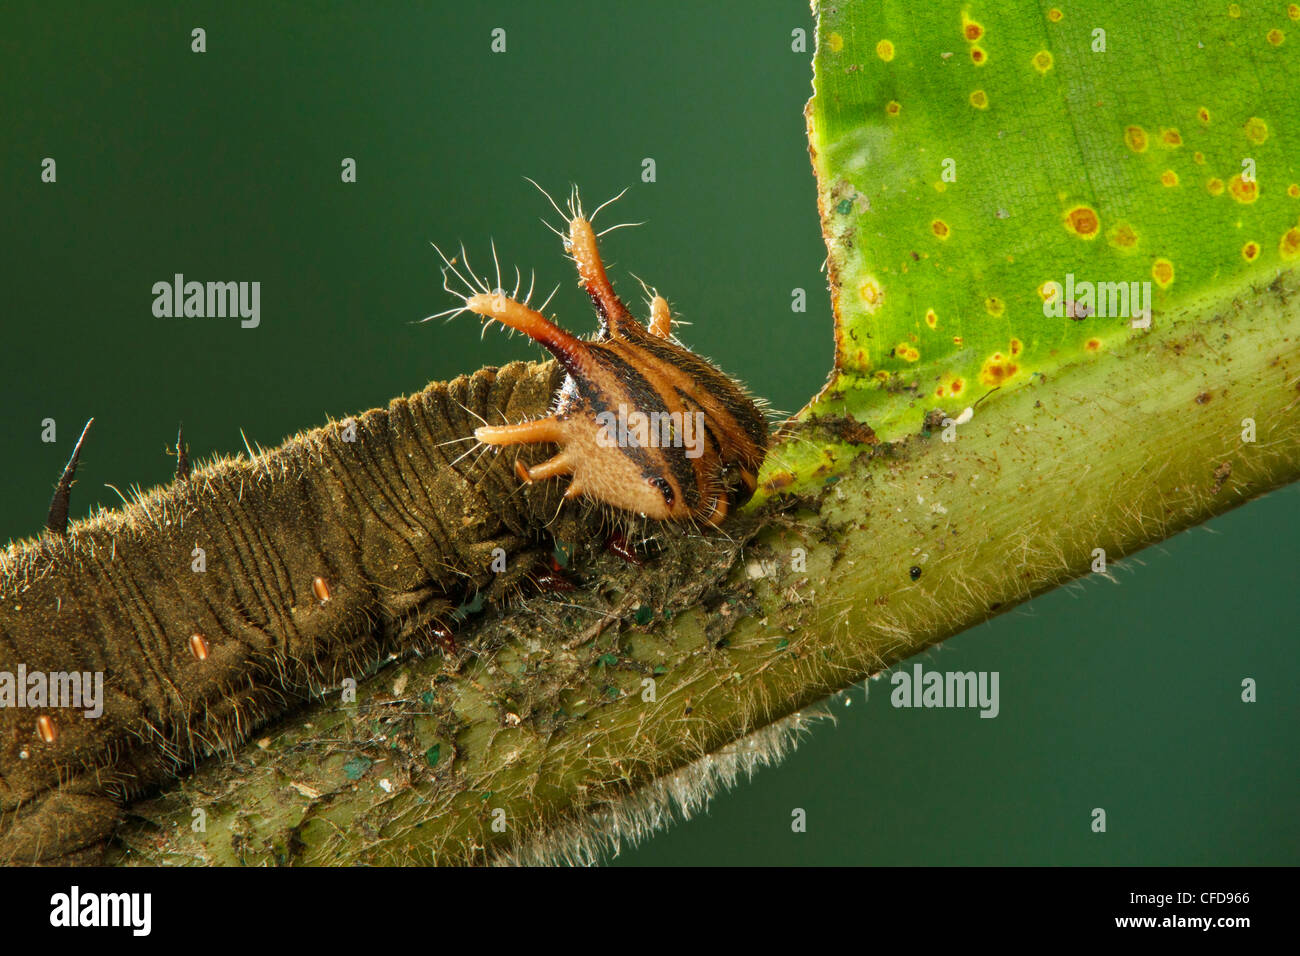 Caterpillar perched on a heliconia leaf in Costa Rica. - Stock Image